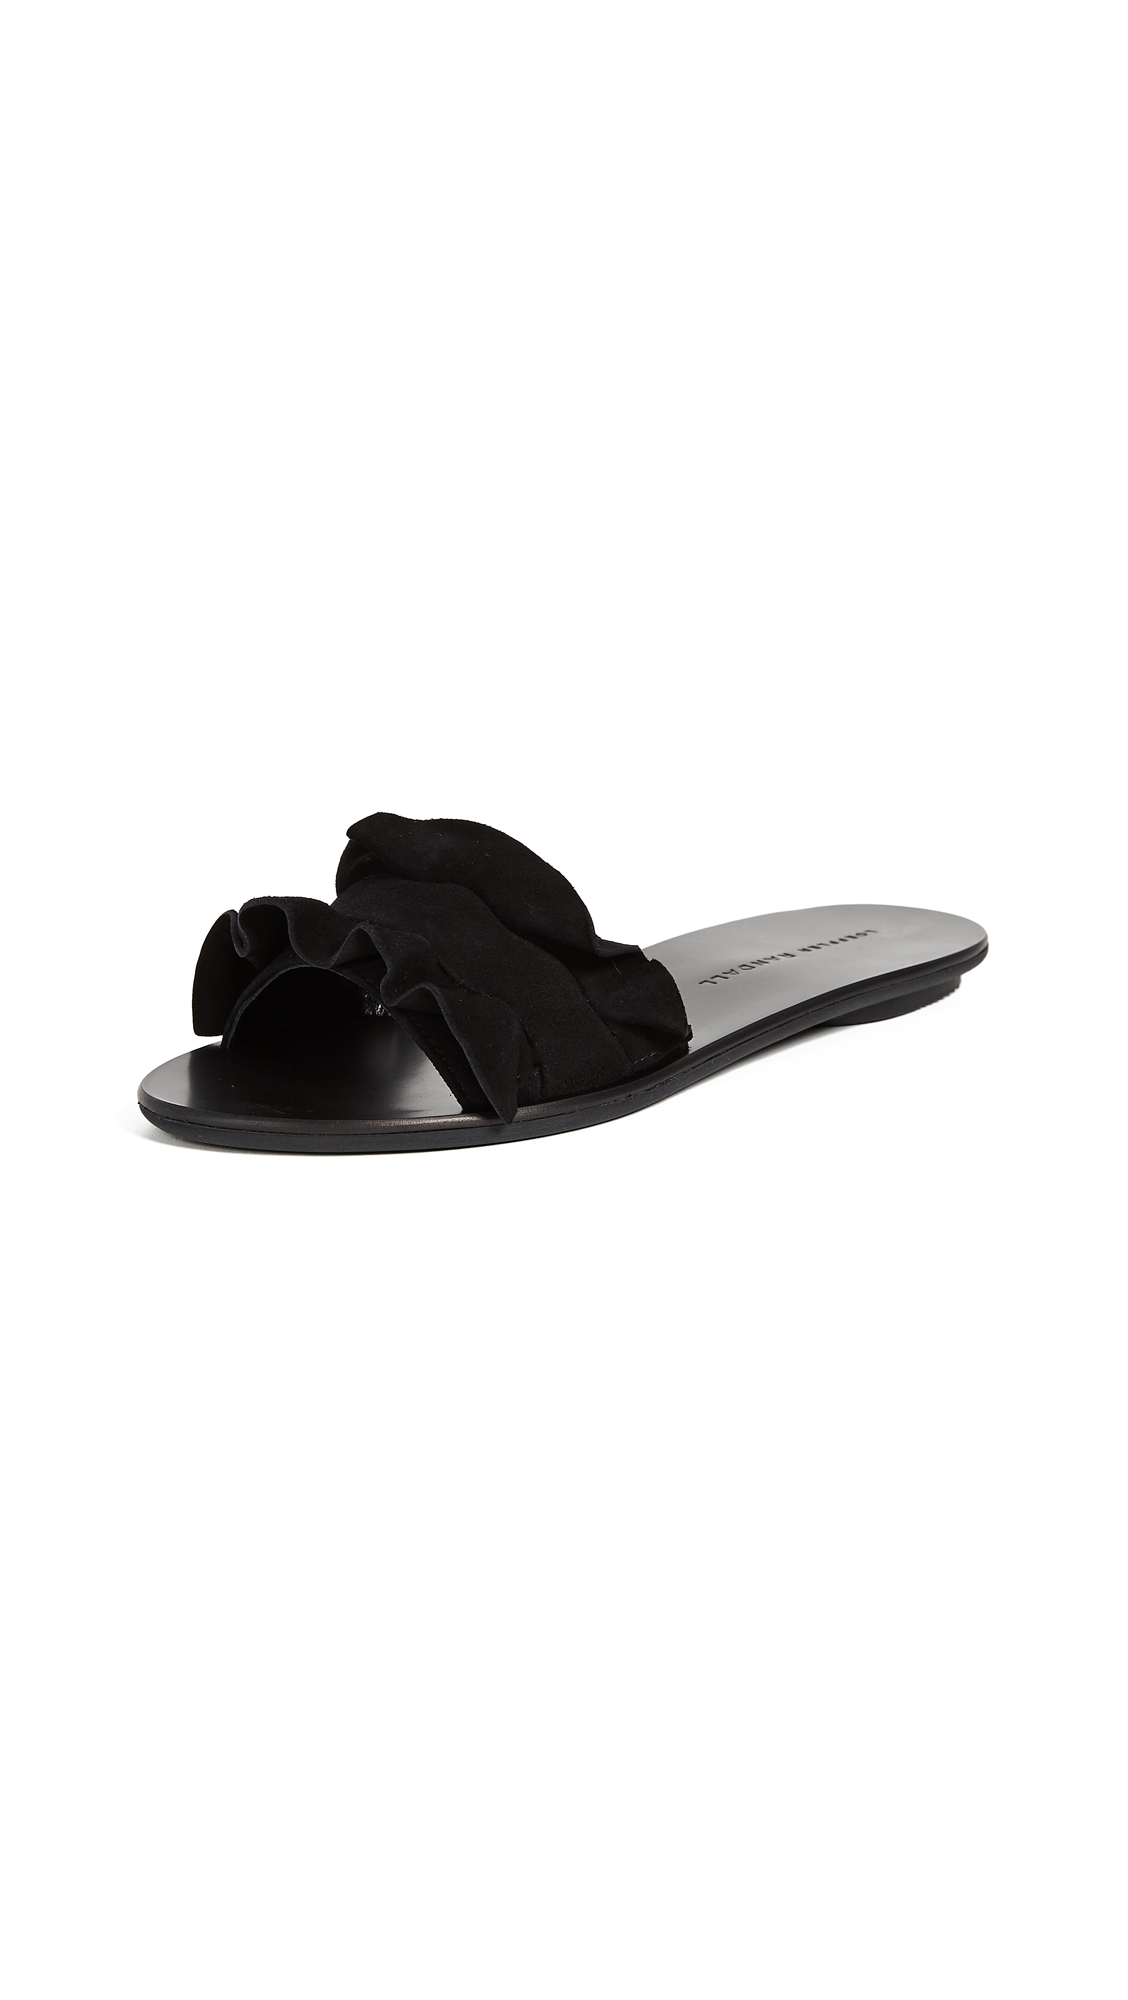 Photo of Loeffler Randall Birdie Ruffle Slides online shoes sales